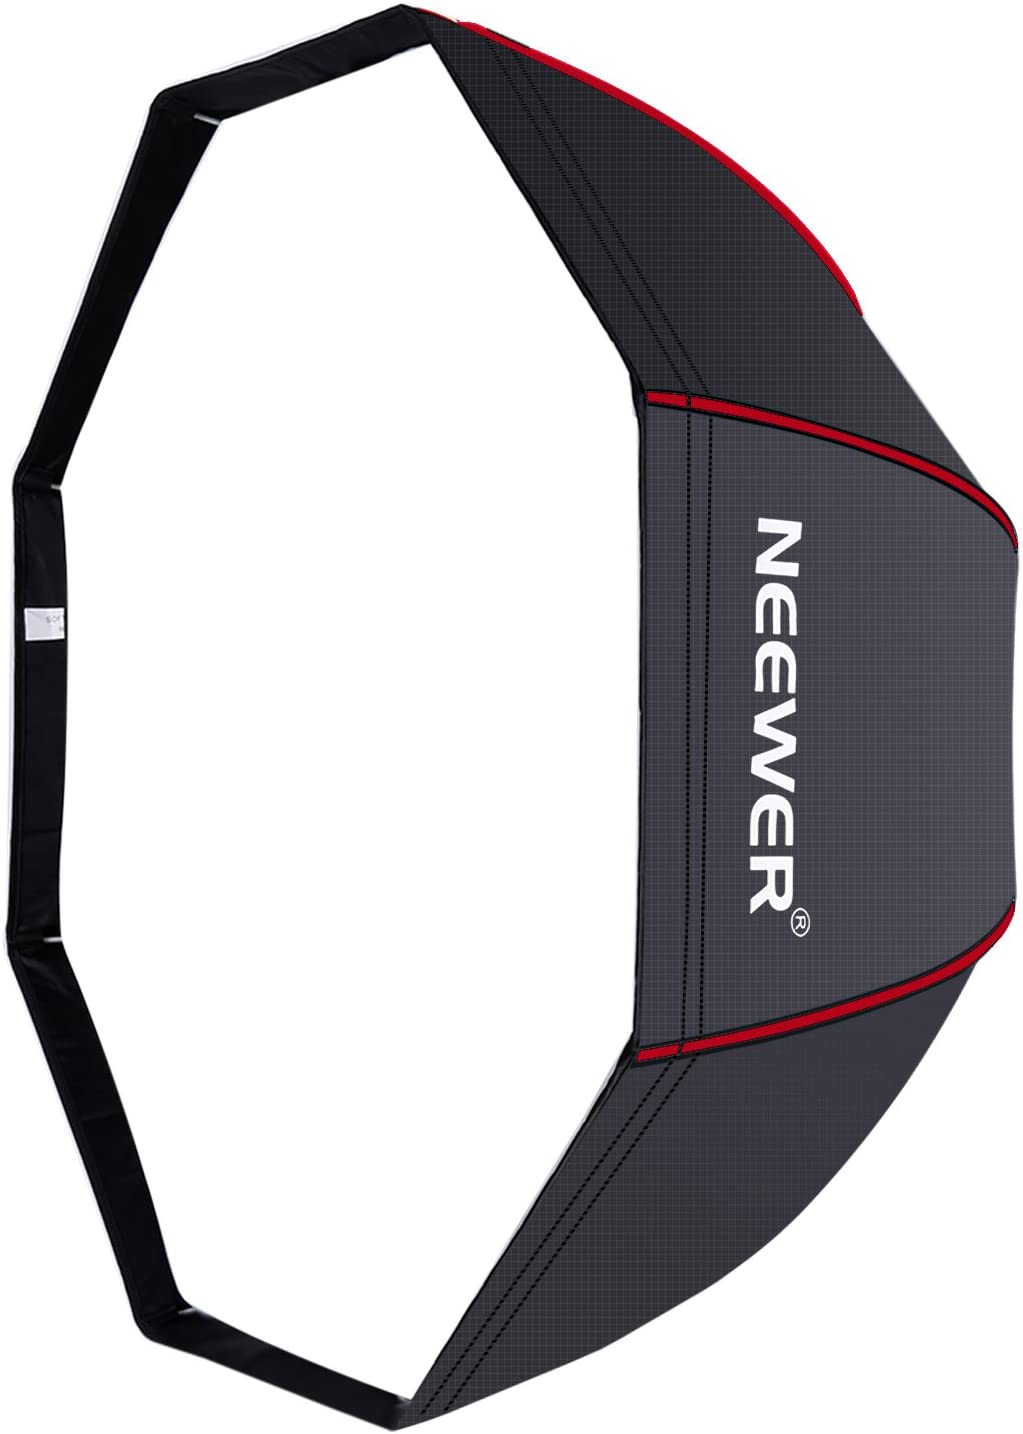 Neewer 47 inches/120 centimeters Octagonal Softbox Umbrella with Red Edges and Carrying Bag for Portrait or Product Photography, Suitable for Canon Nikon Sony Speedlite, Studio Flash (Black/Red)